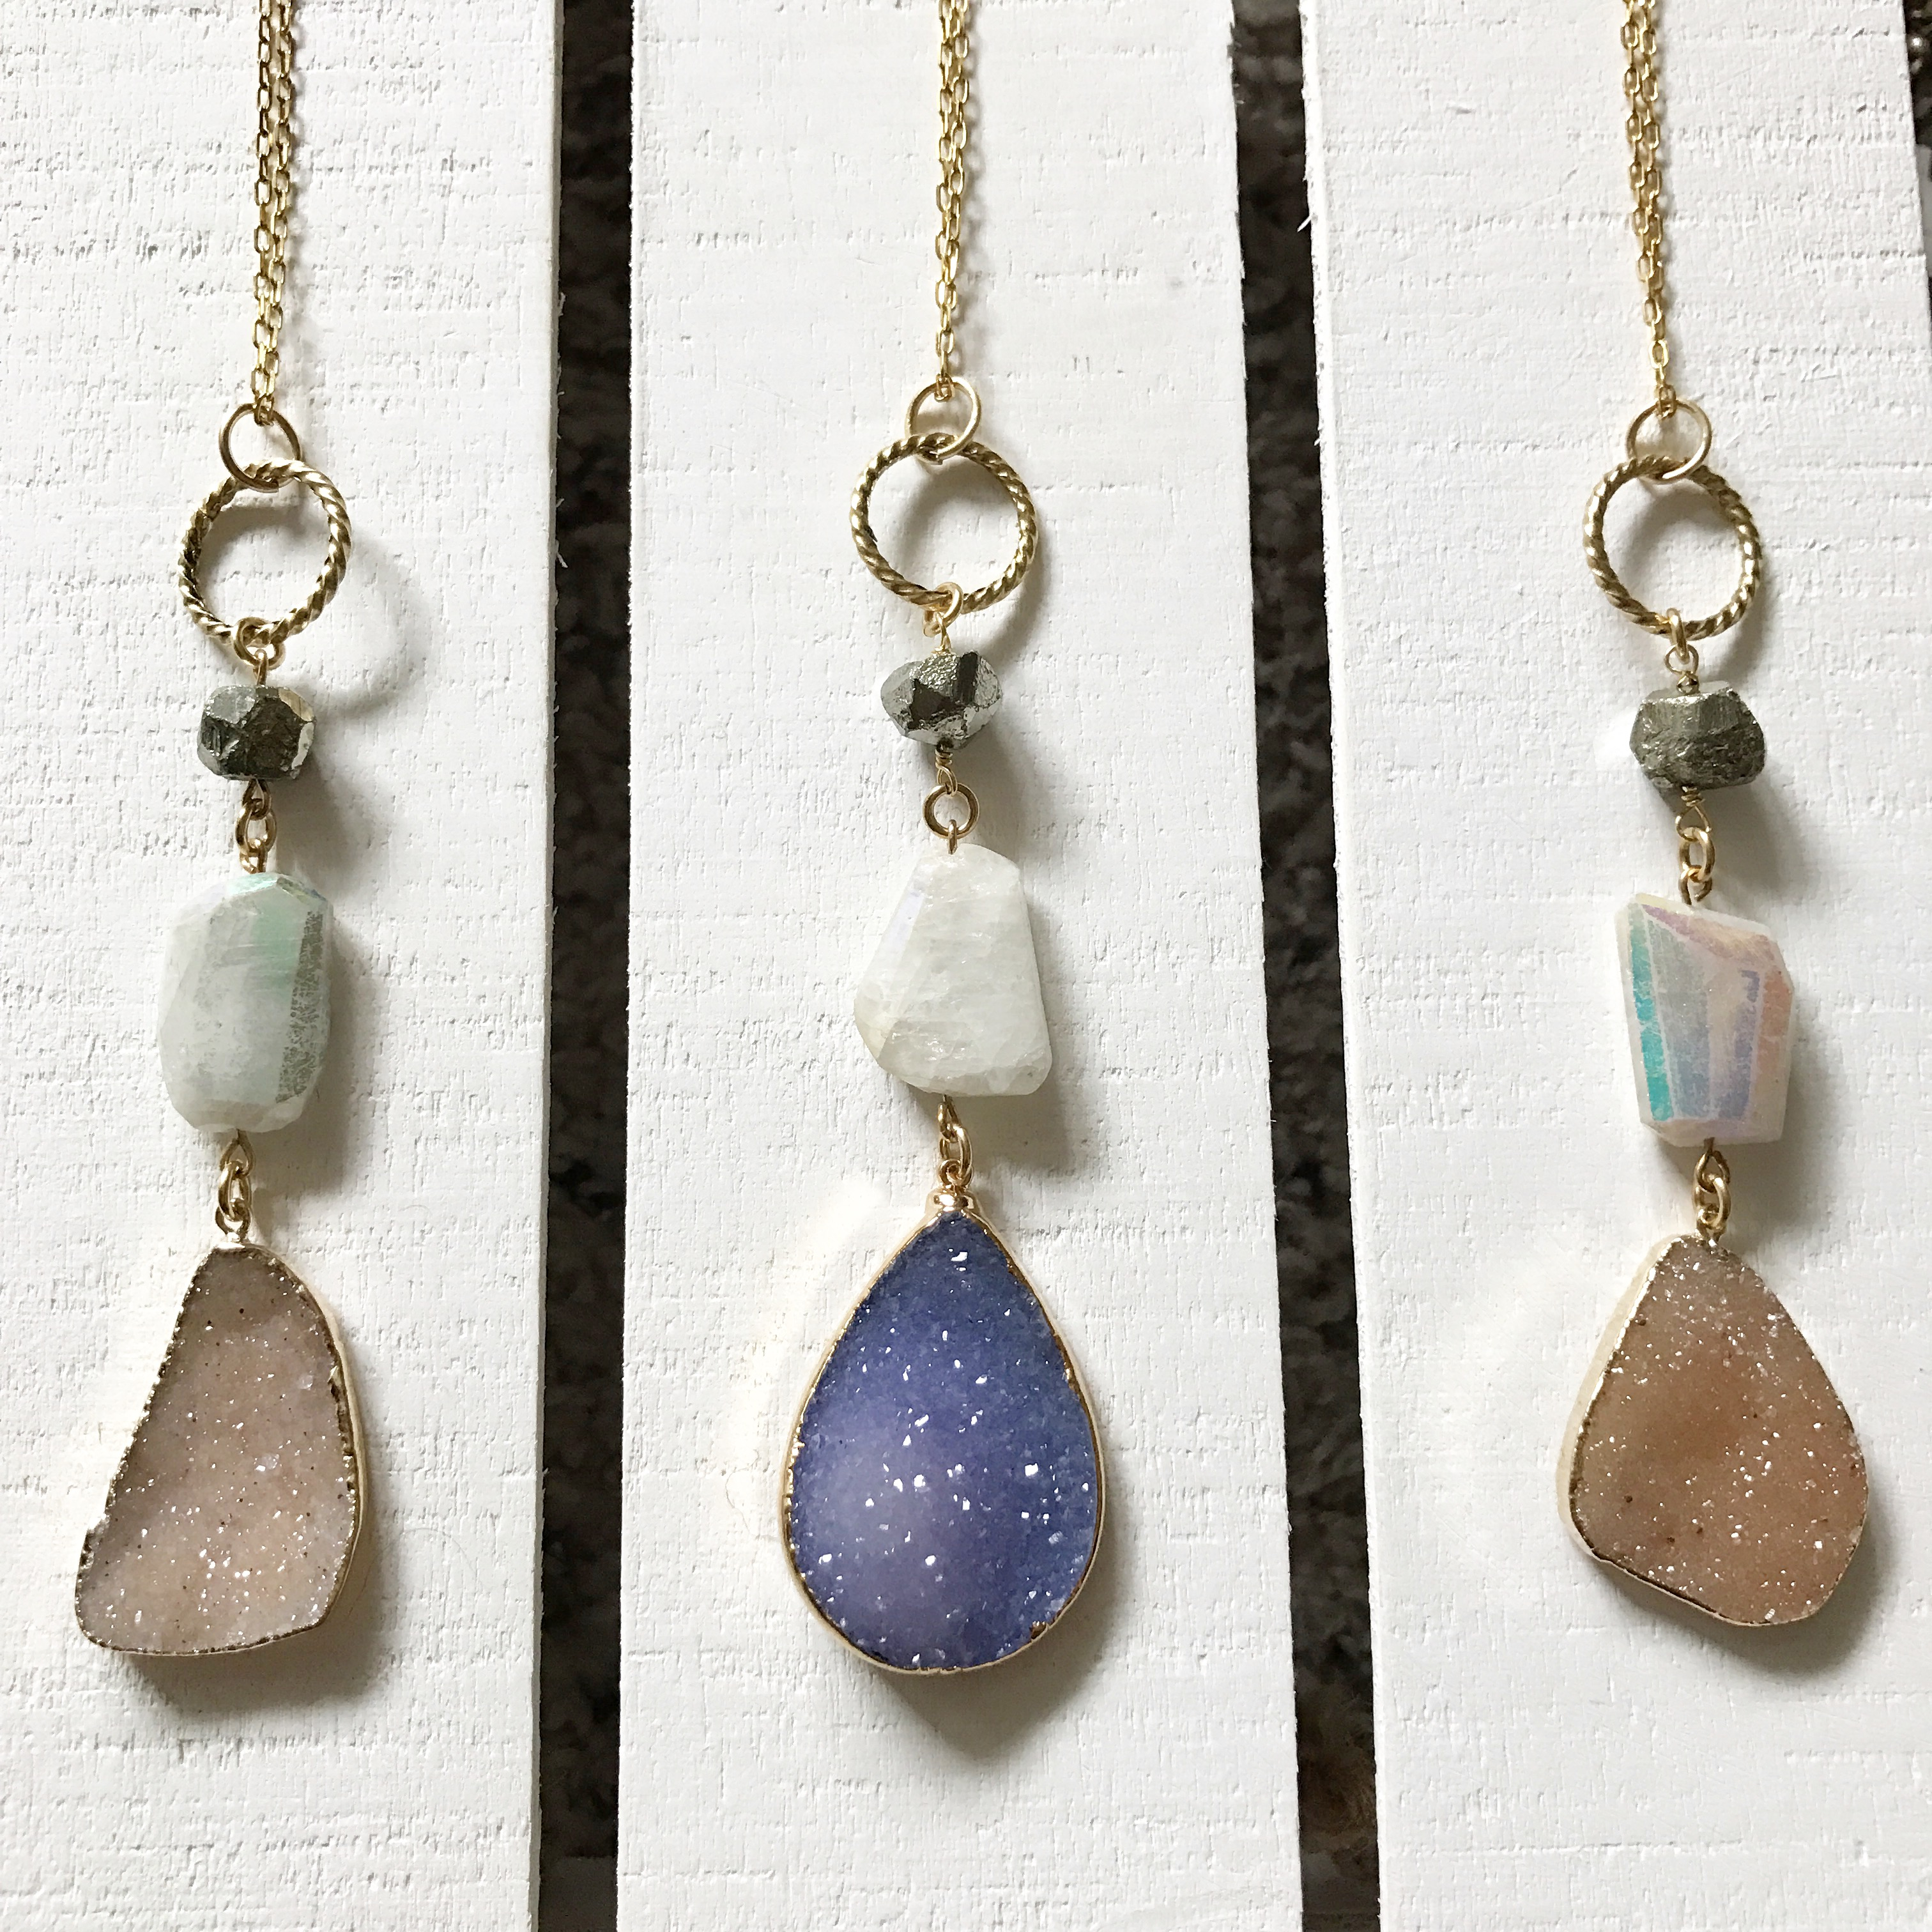 Druzy Gemstone, along with Pyrite and AB Quartz.